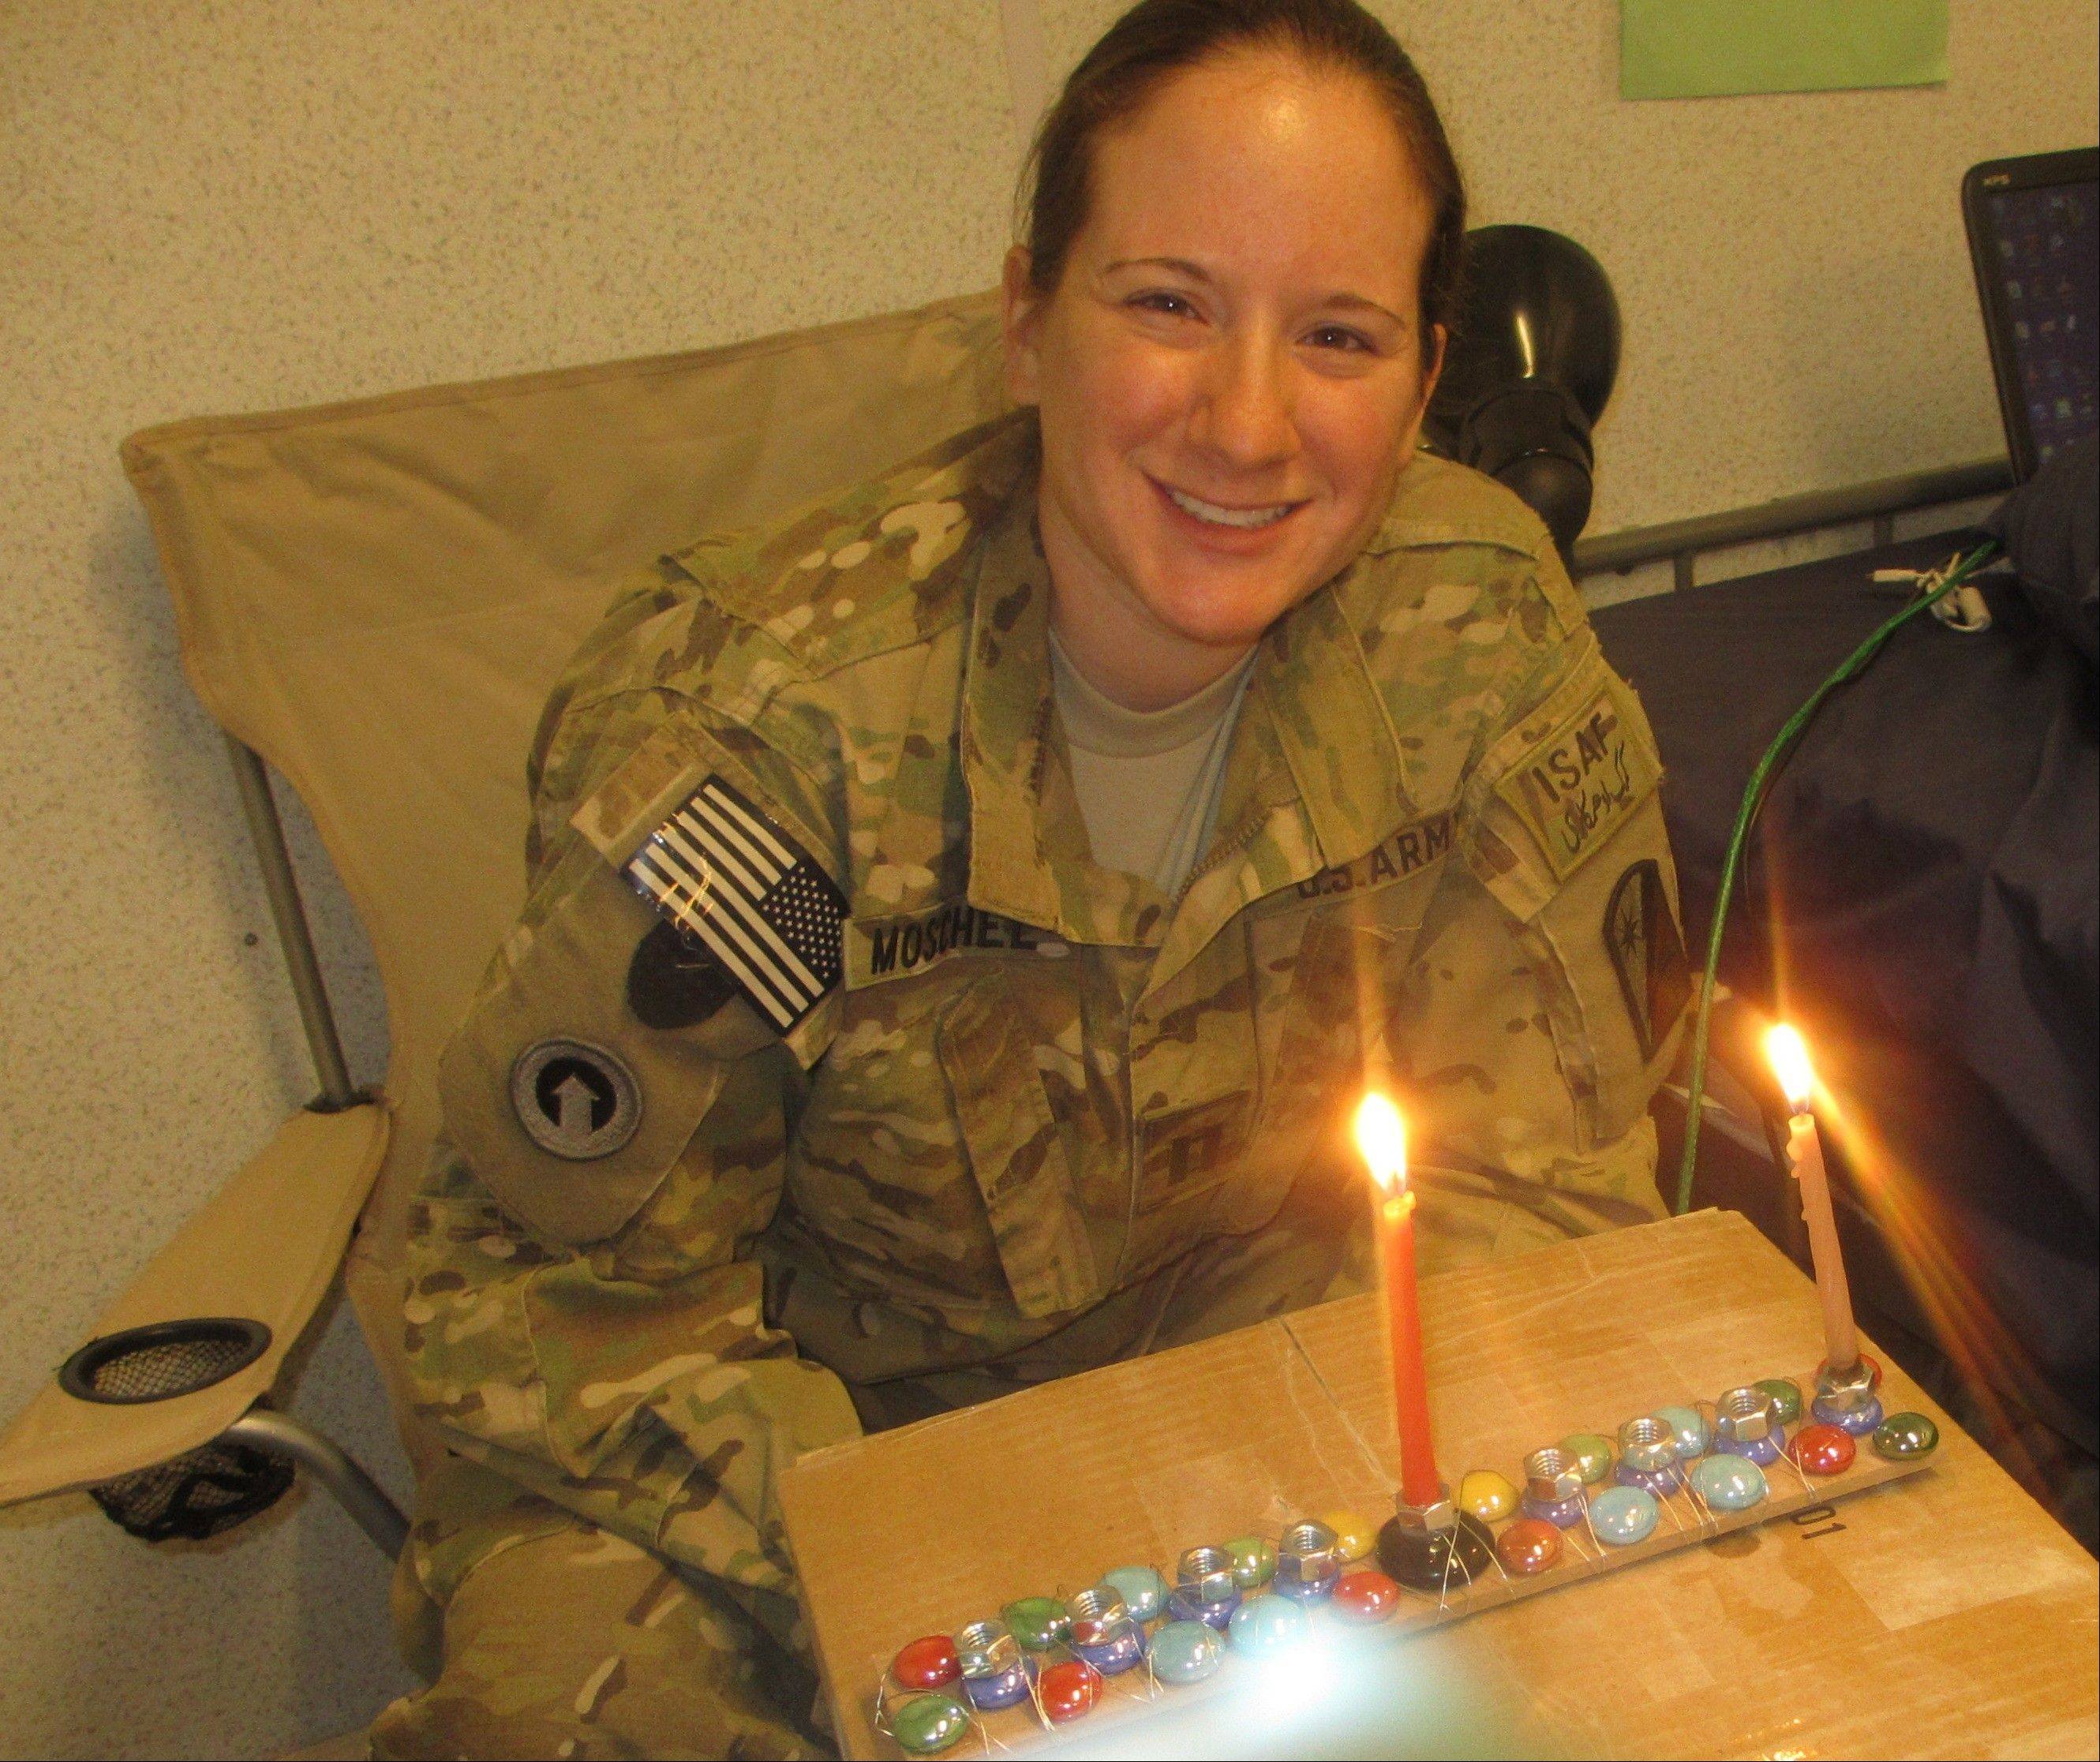 Captain Becky Moschel lights a menorah made by students at Anshe Tikvah on the first night of Hanukkah while serving in Afghanistan.